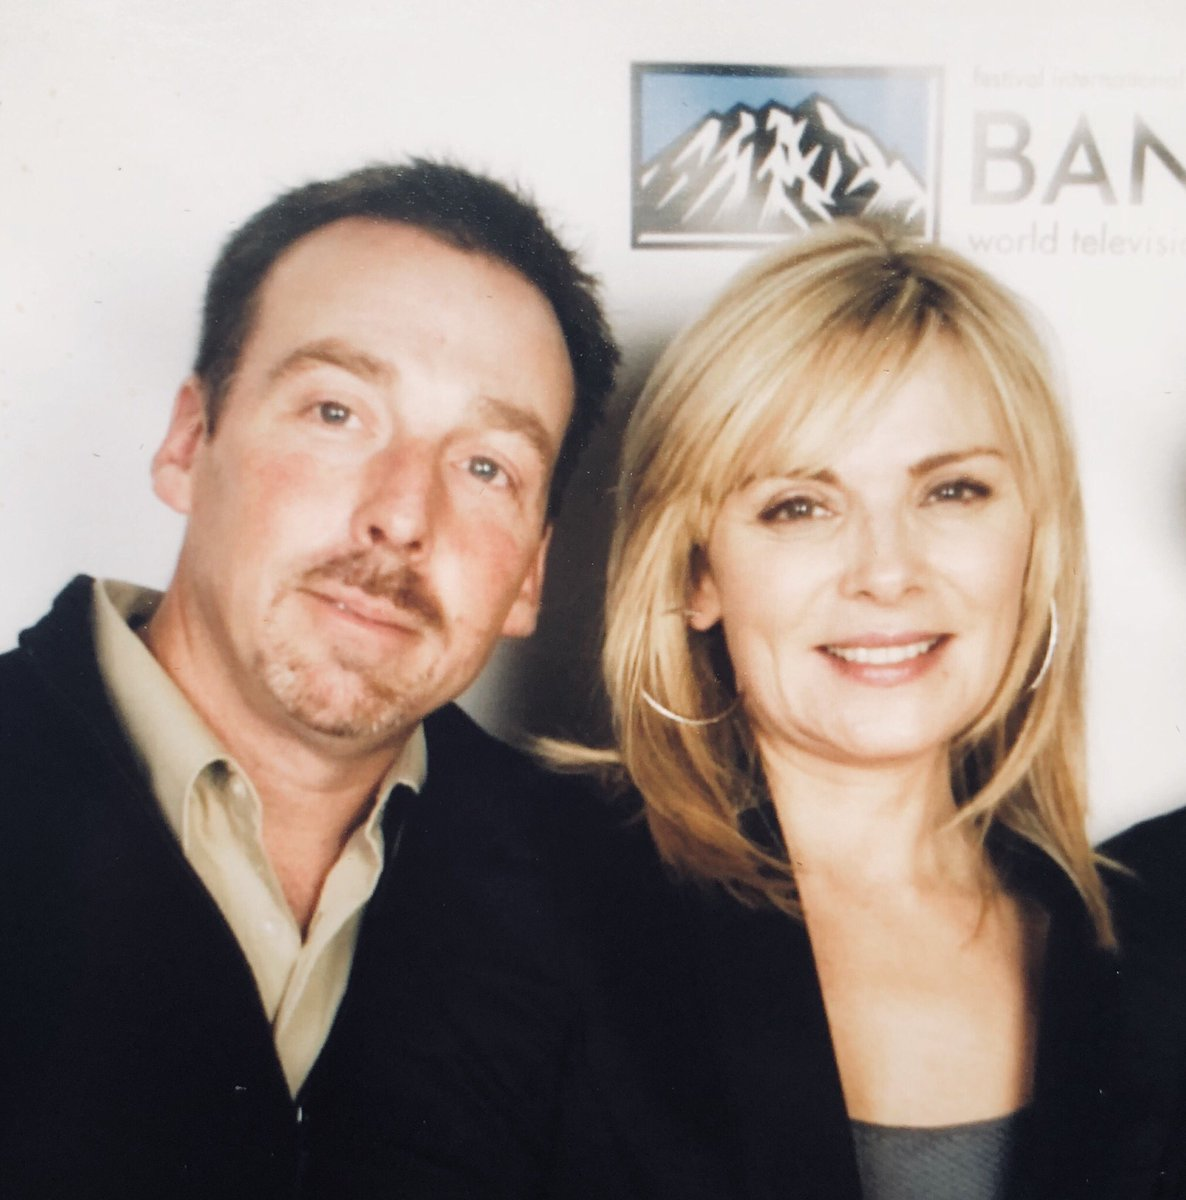 CHRISTOPHER CATTRALL'S BODY FOUND